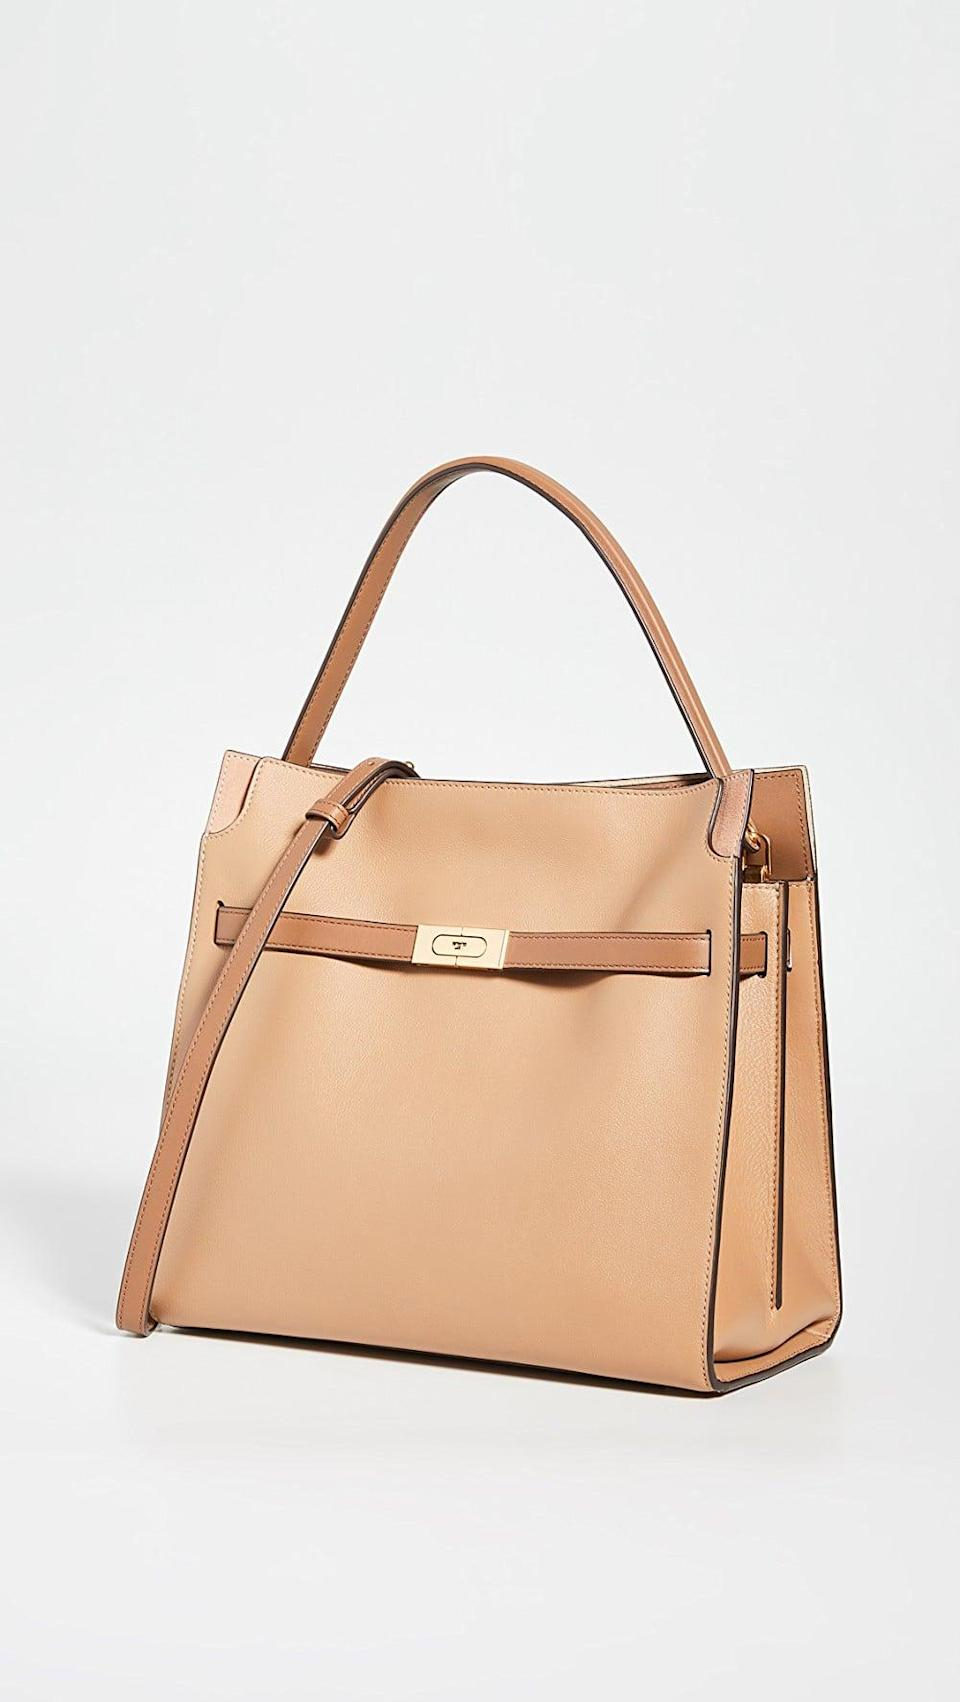 <p>This <span>Tory Burch Lee Radziwill Double Bag</span> ($998) will make you feel like a boss. It's as classic as it gets.</p>